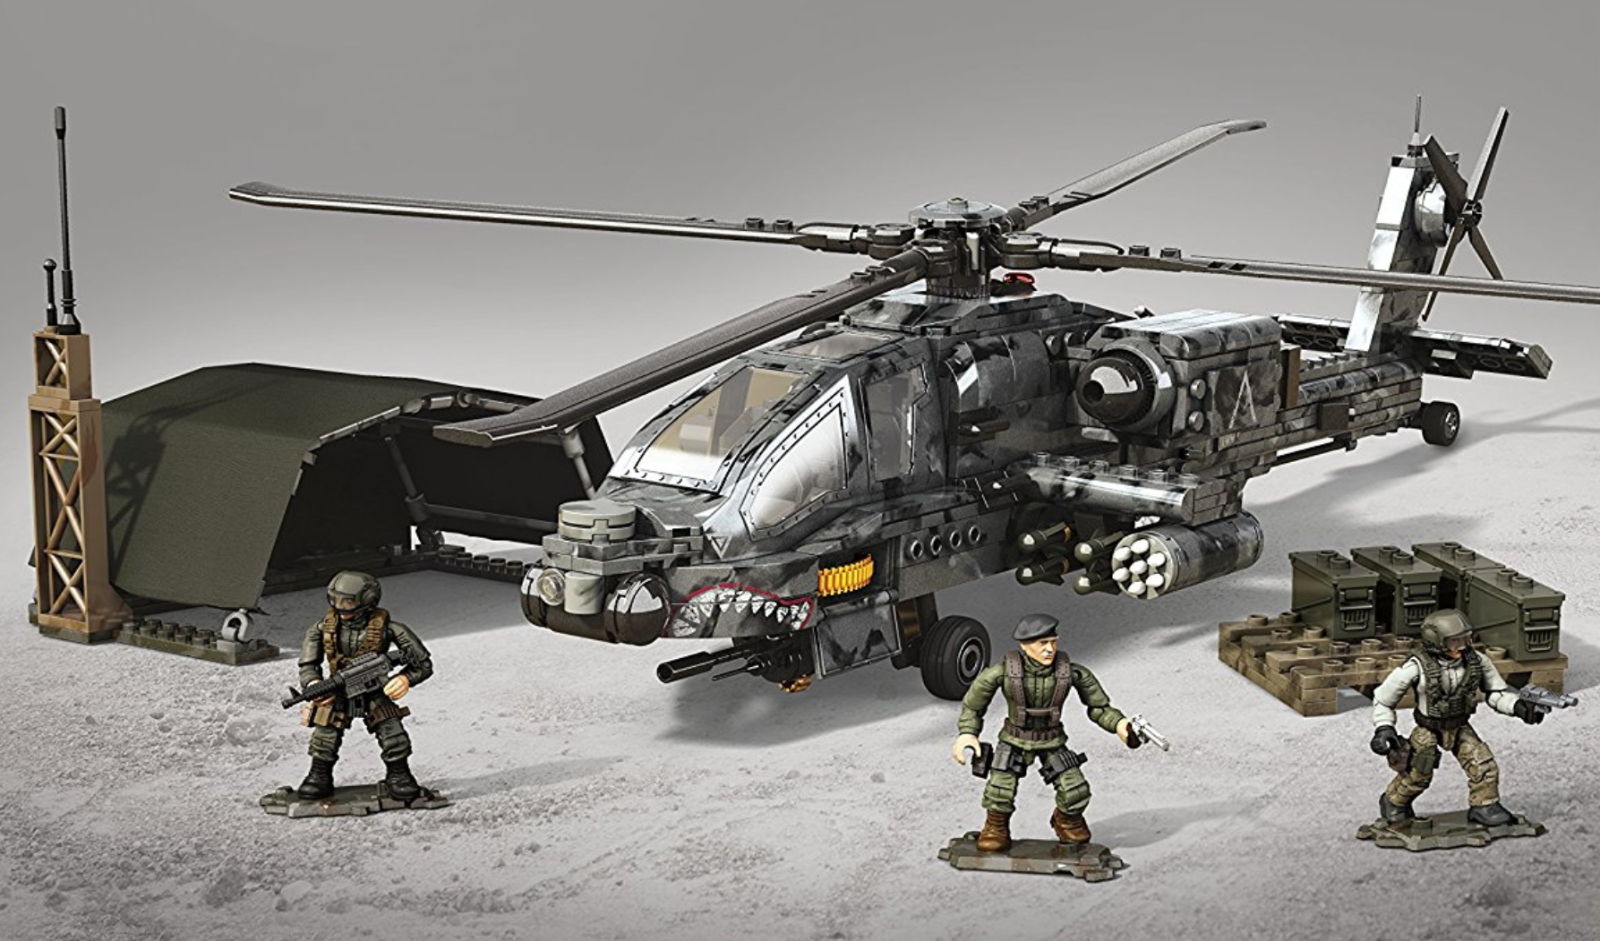 CALL OF DUTY Mega Bloks WAR HELICOPTER Military Lego-type Large Building Set 14+